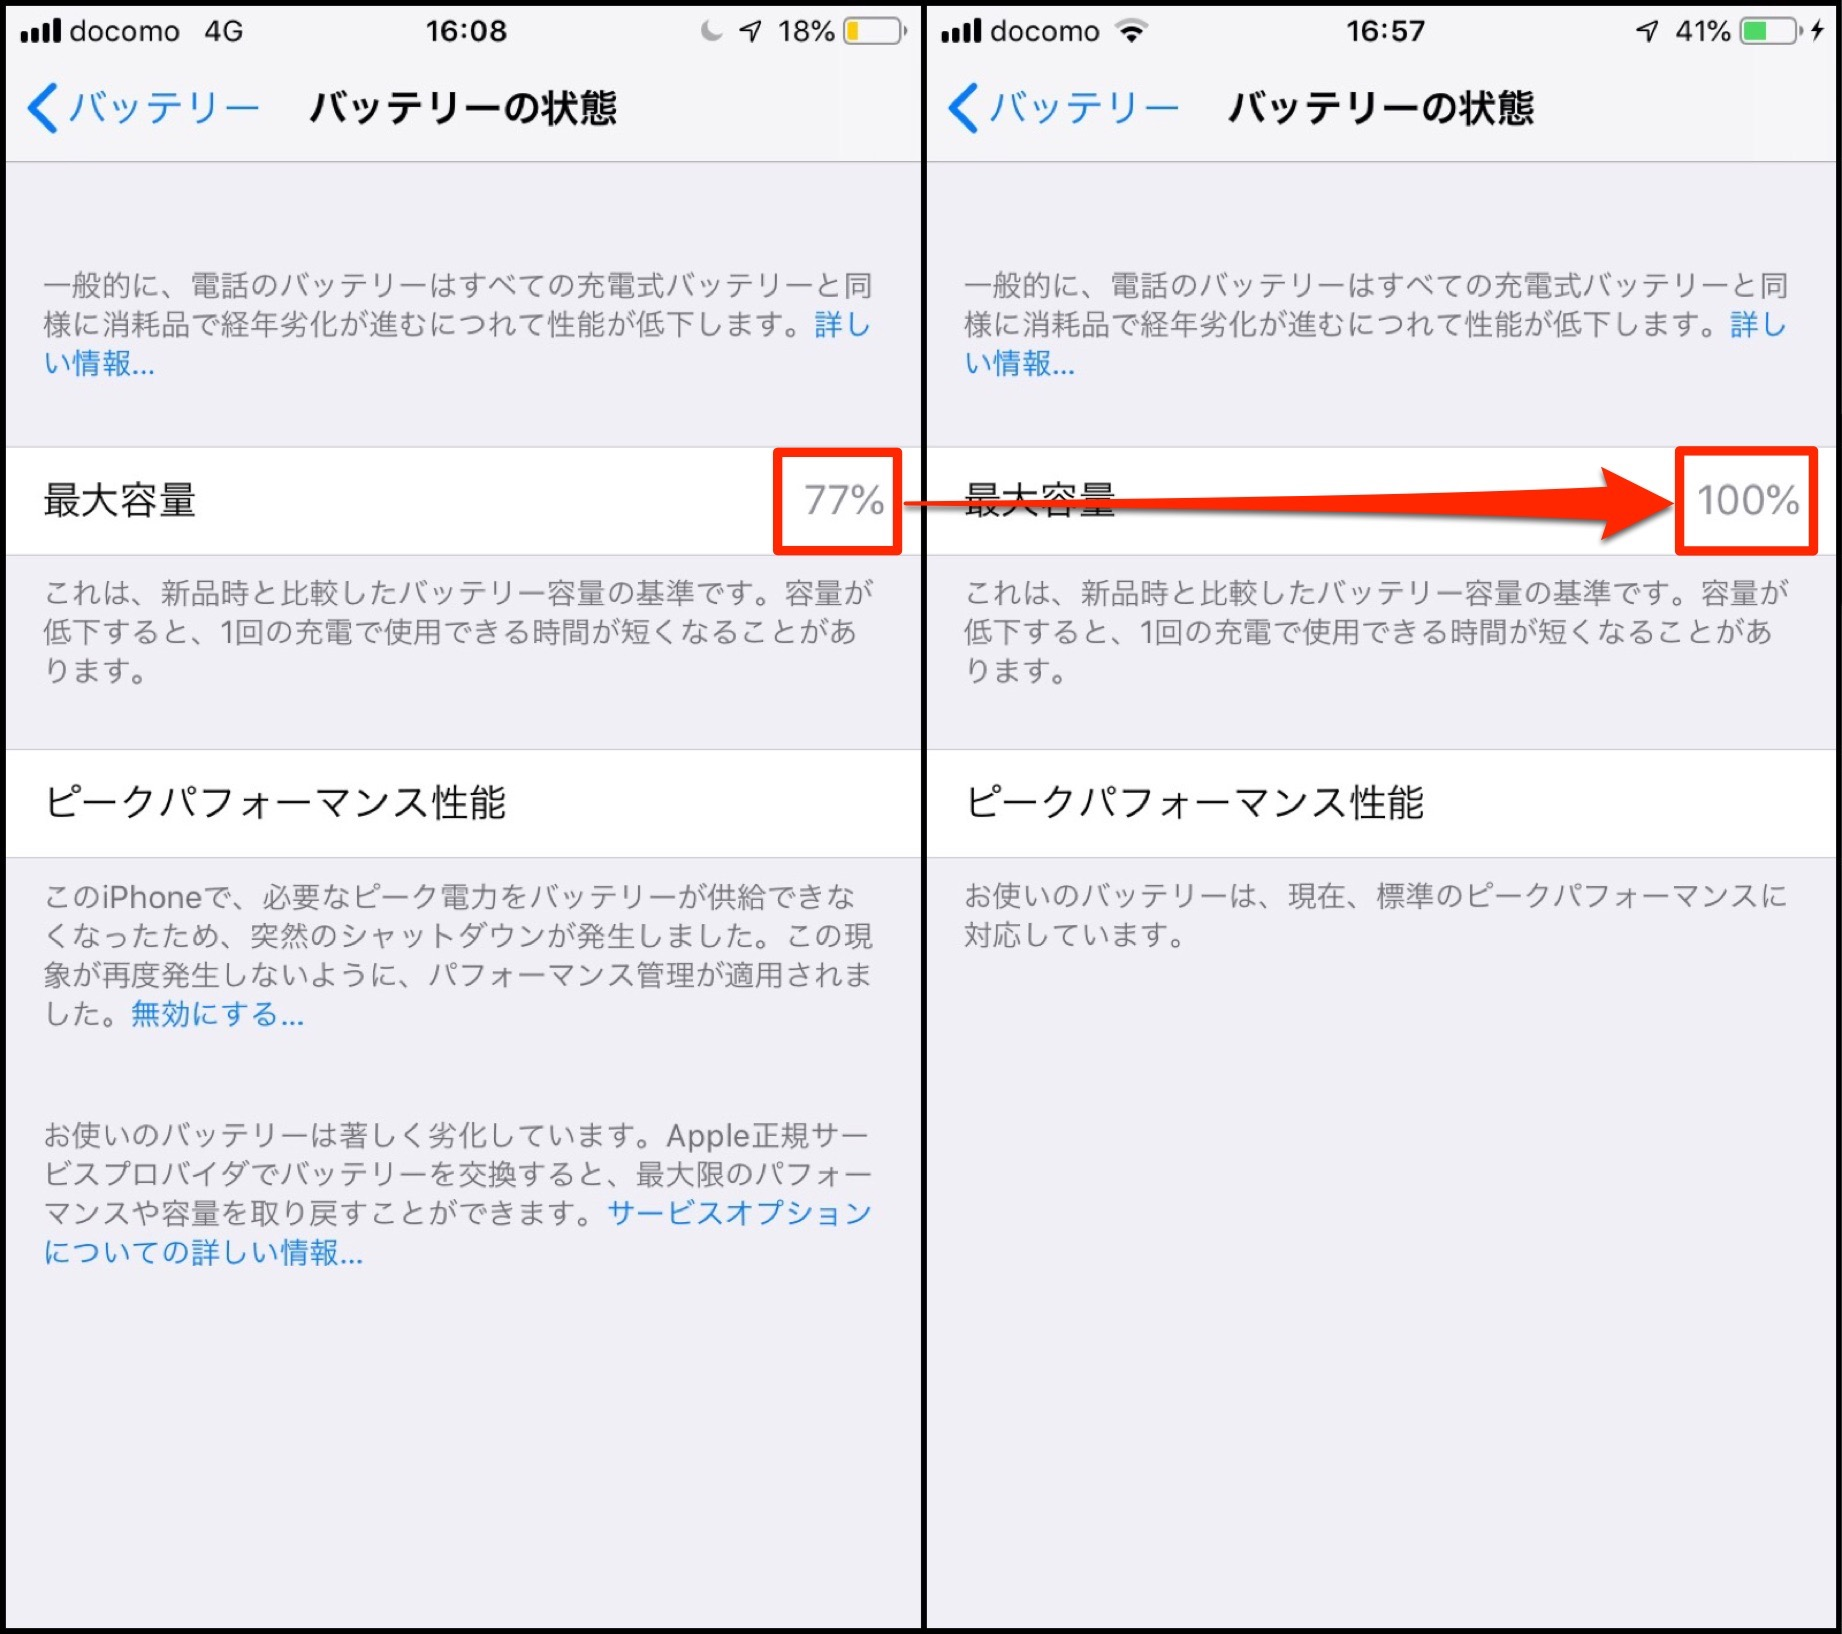 iPhone 6s バッテリー改善-1